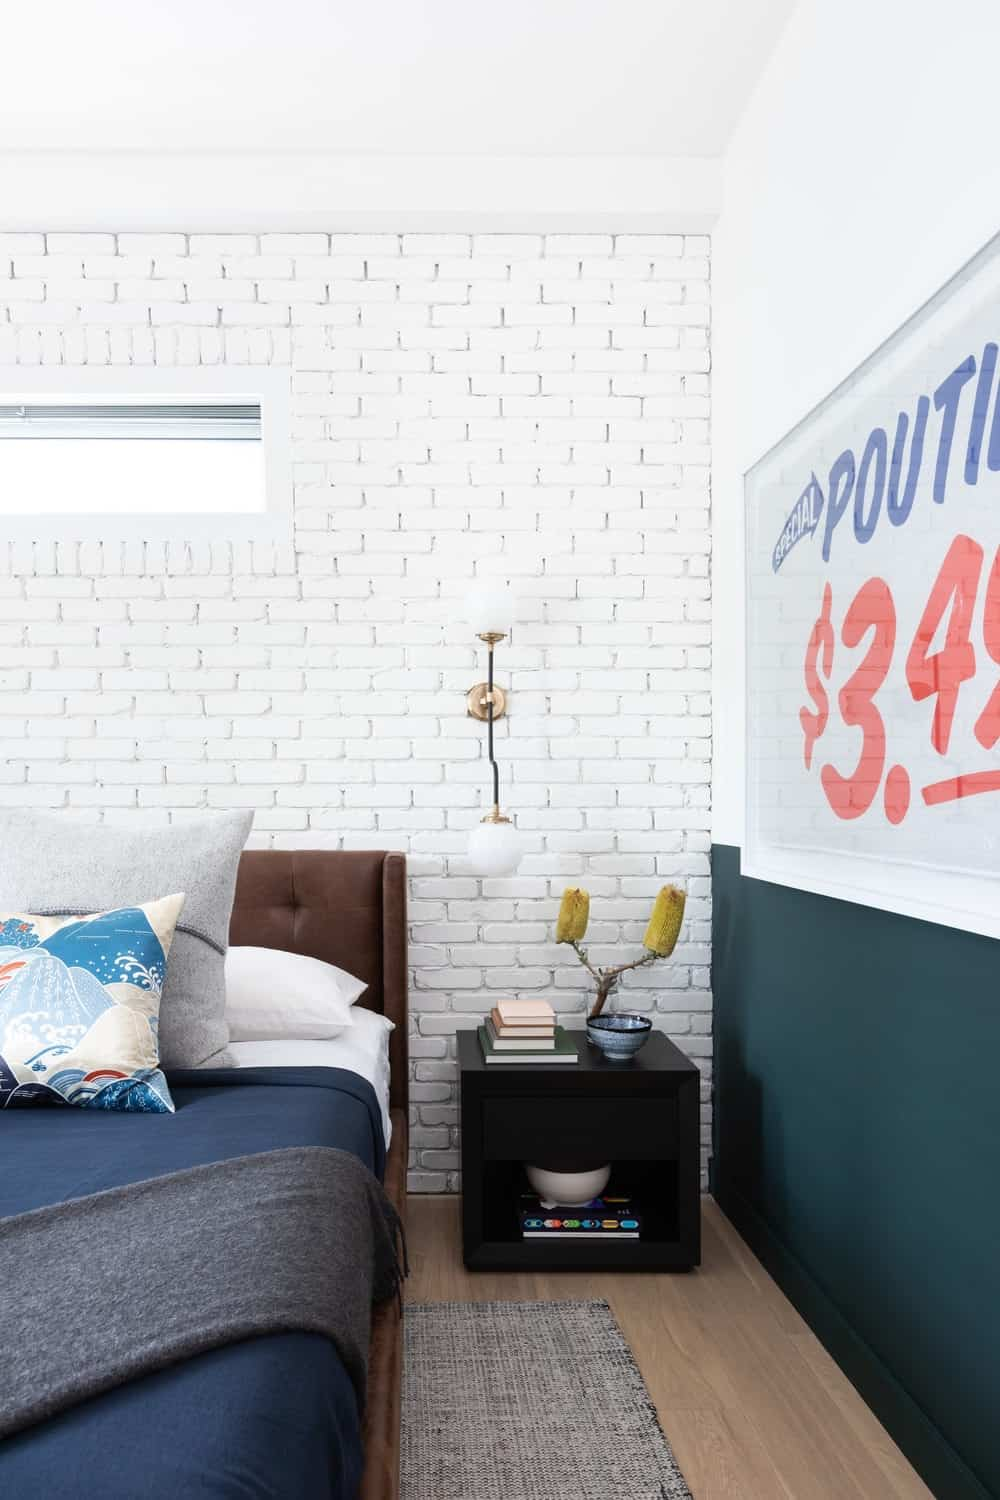 This is a closer look at the lovely white brick wall behind the dark brown cushioned headboard of the bed paired with a small black bedside table. These are then adorned with a vintage signage mounted on the wall beside the bed.